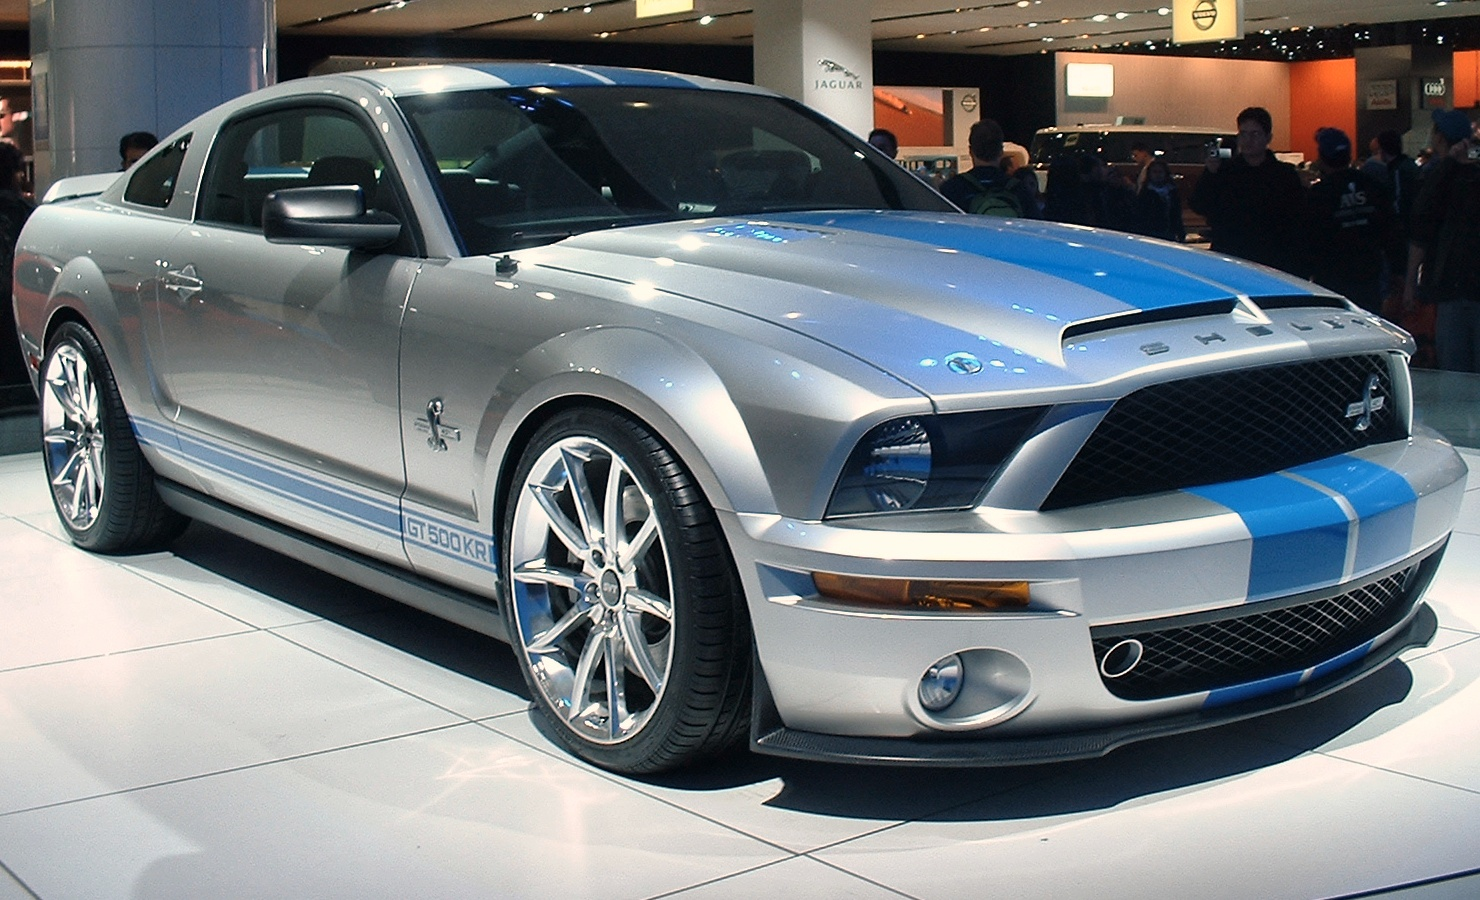 2007 Ford Shelby Gt500 #8